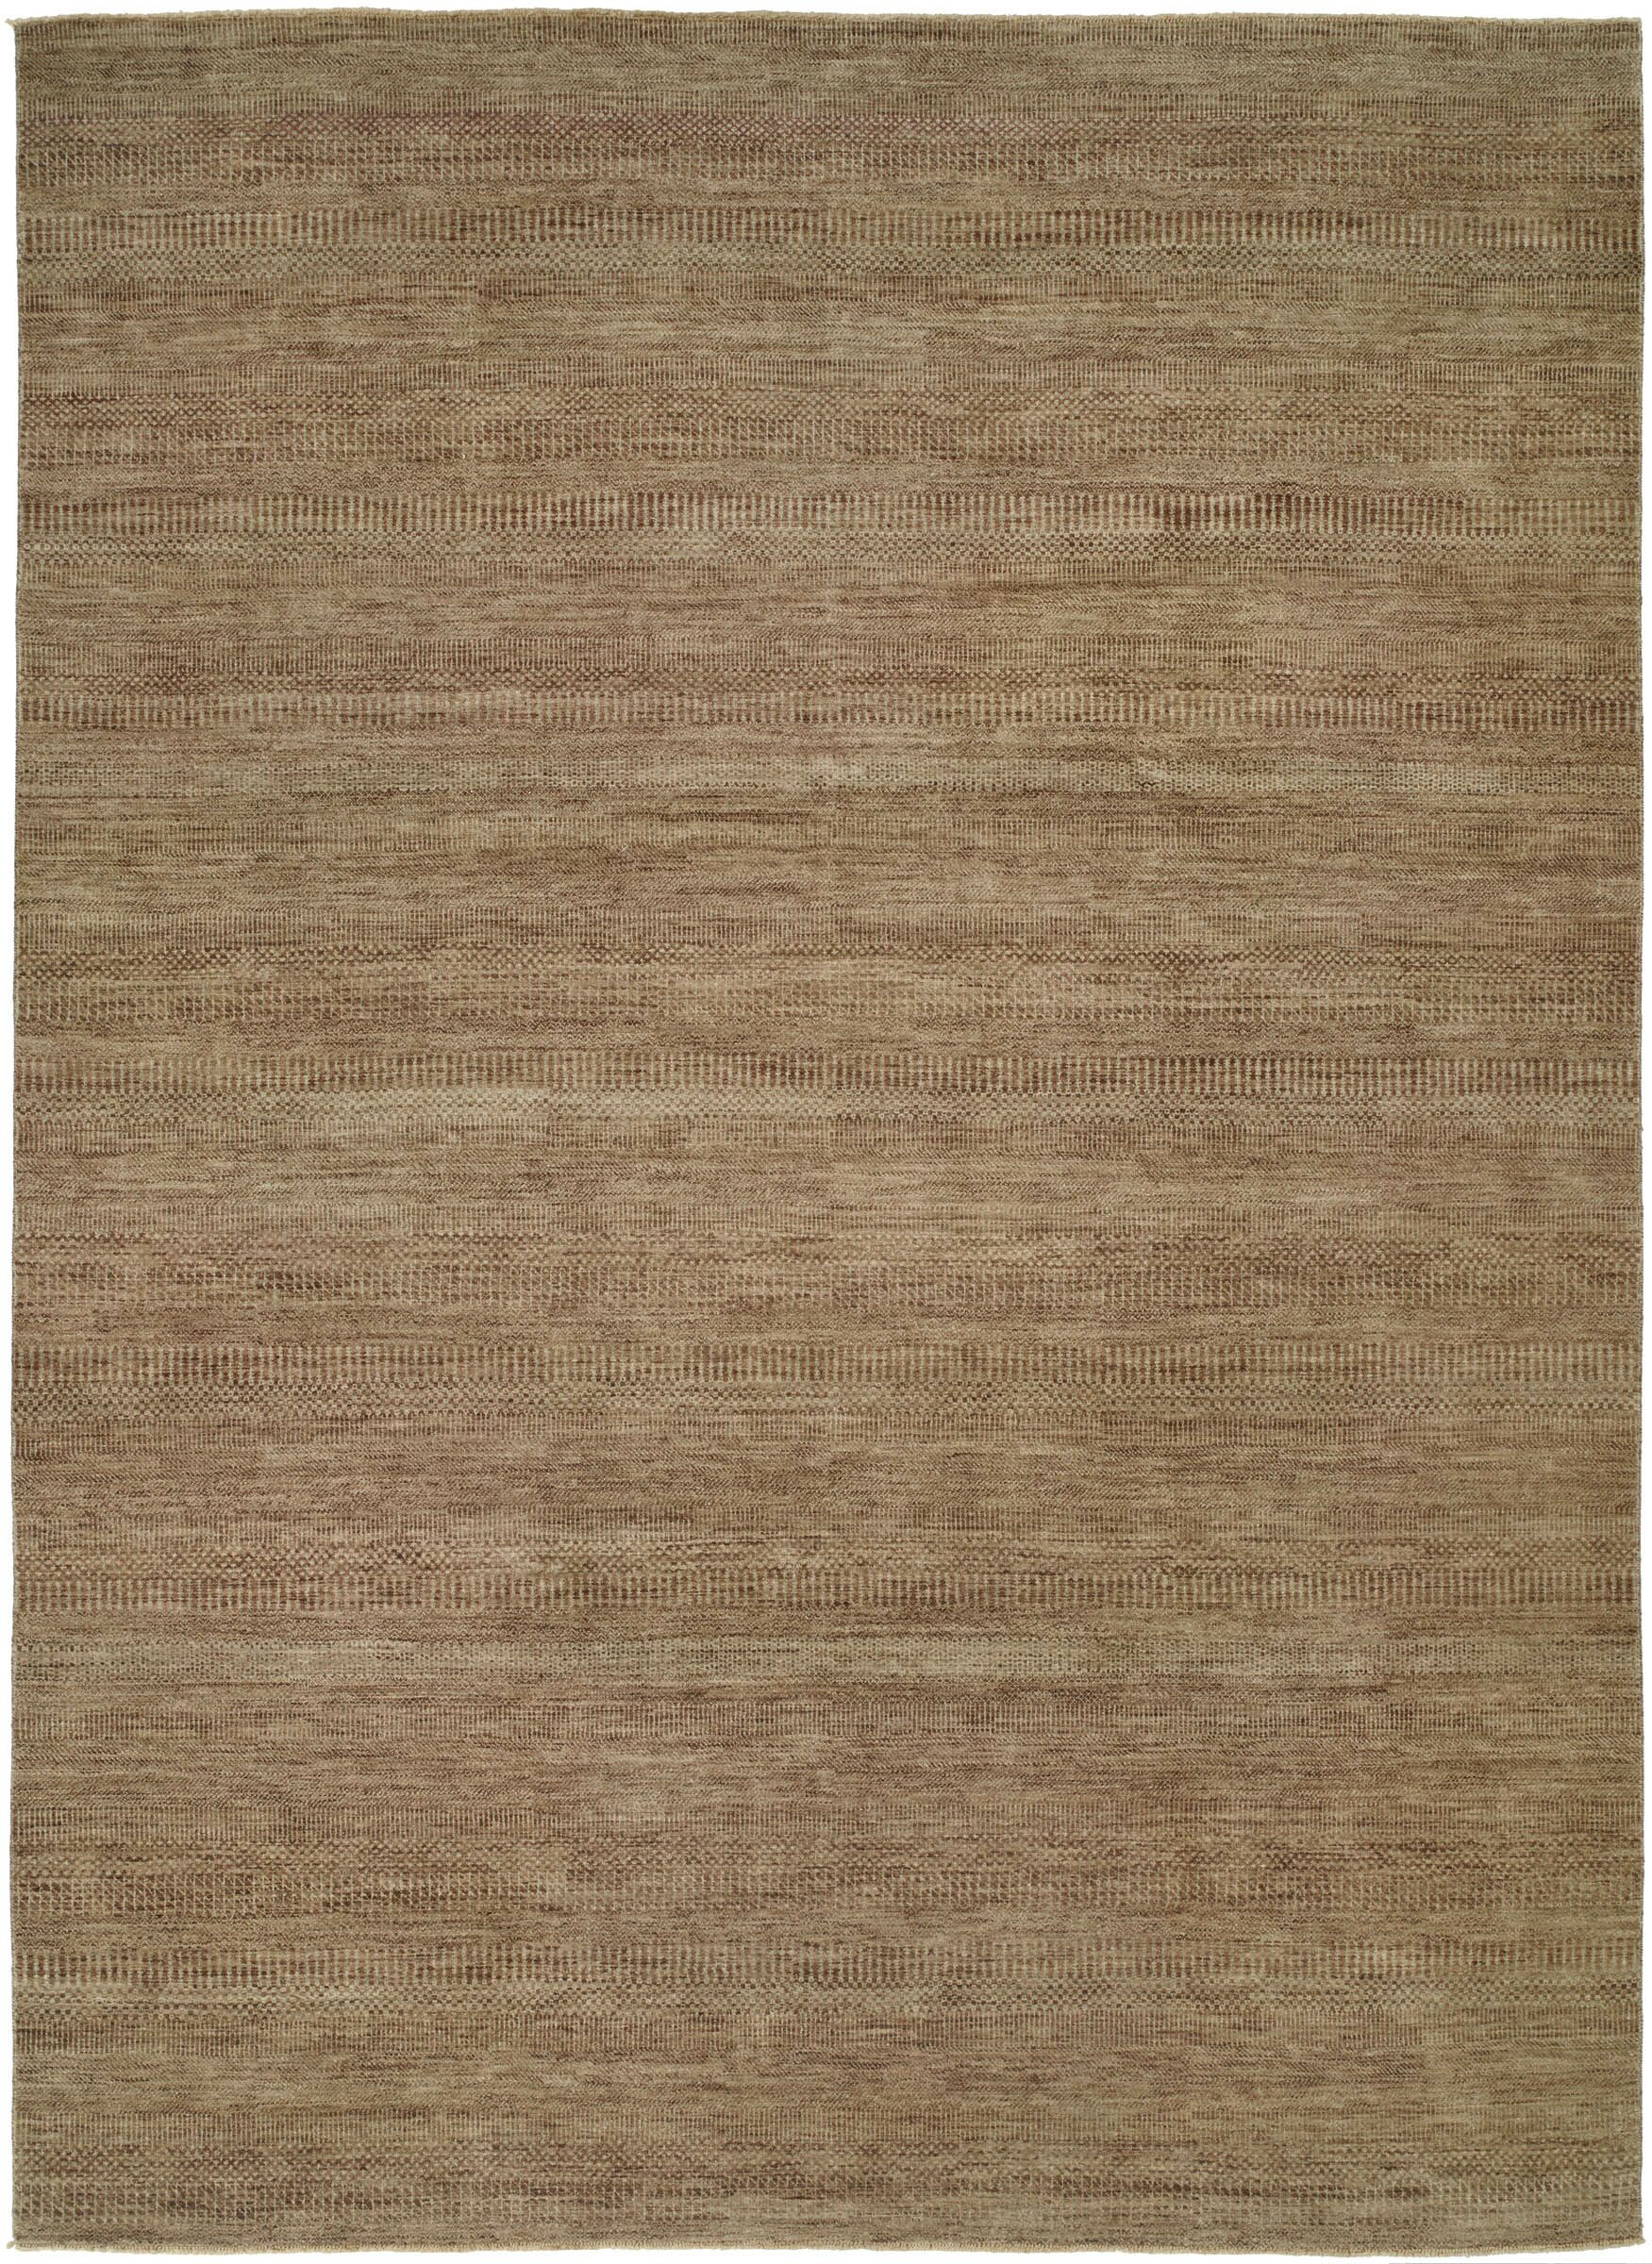 Illusions Light Brown Area Rug Rug Size: 4' x 6'